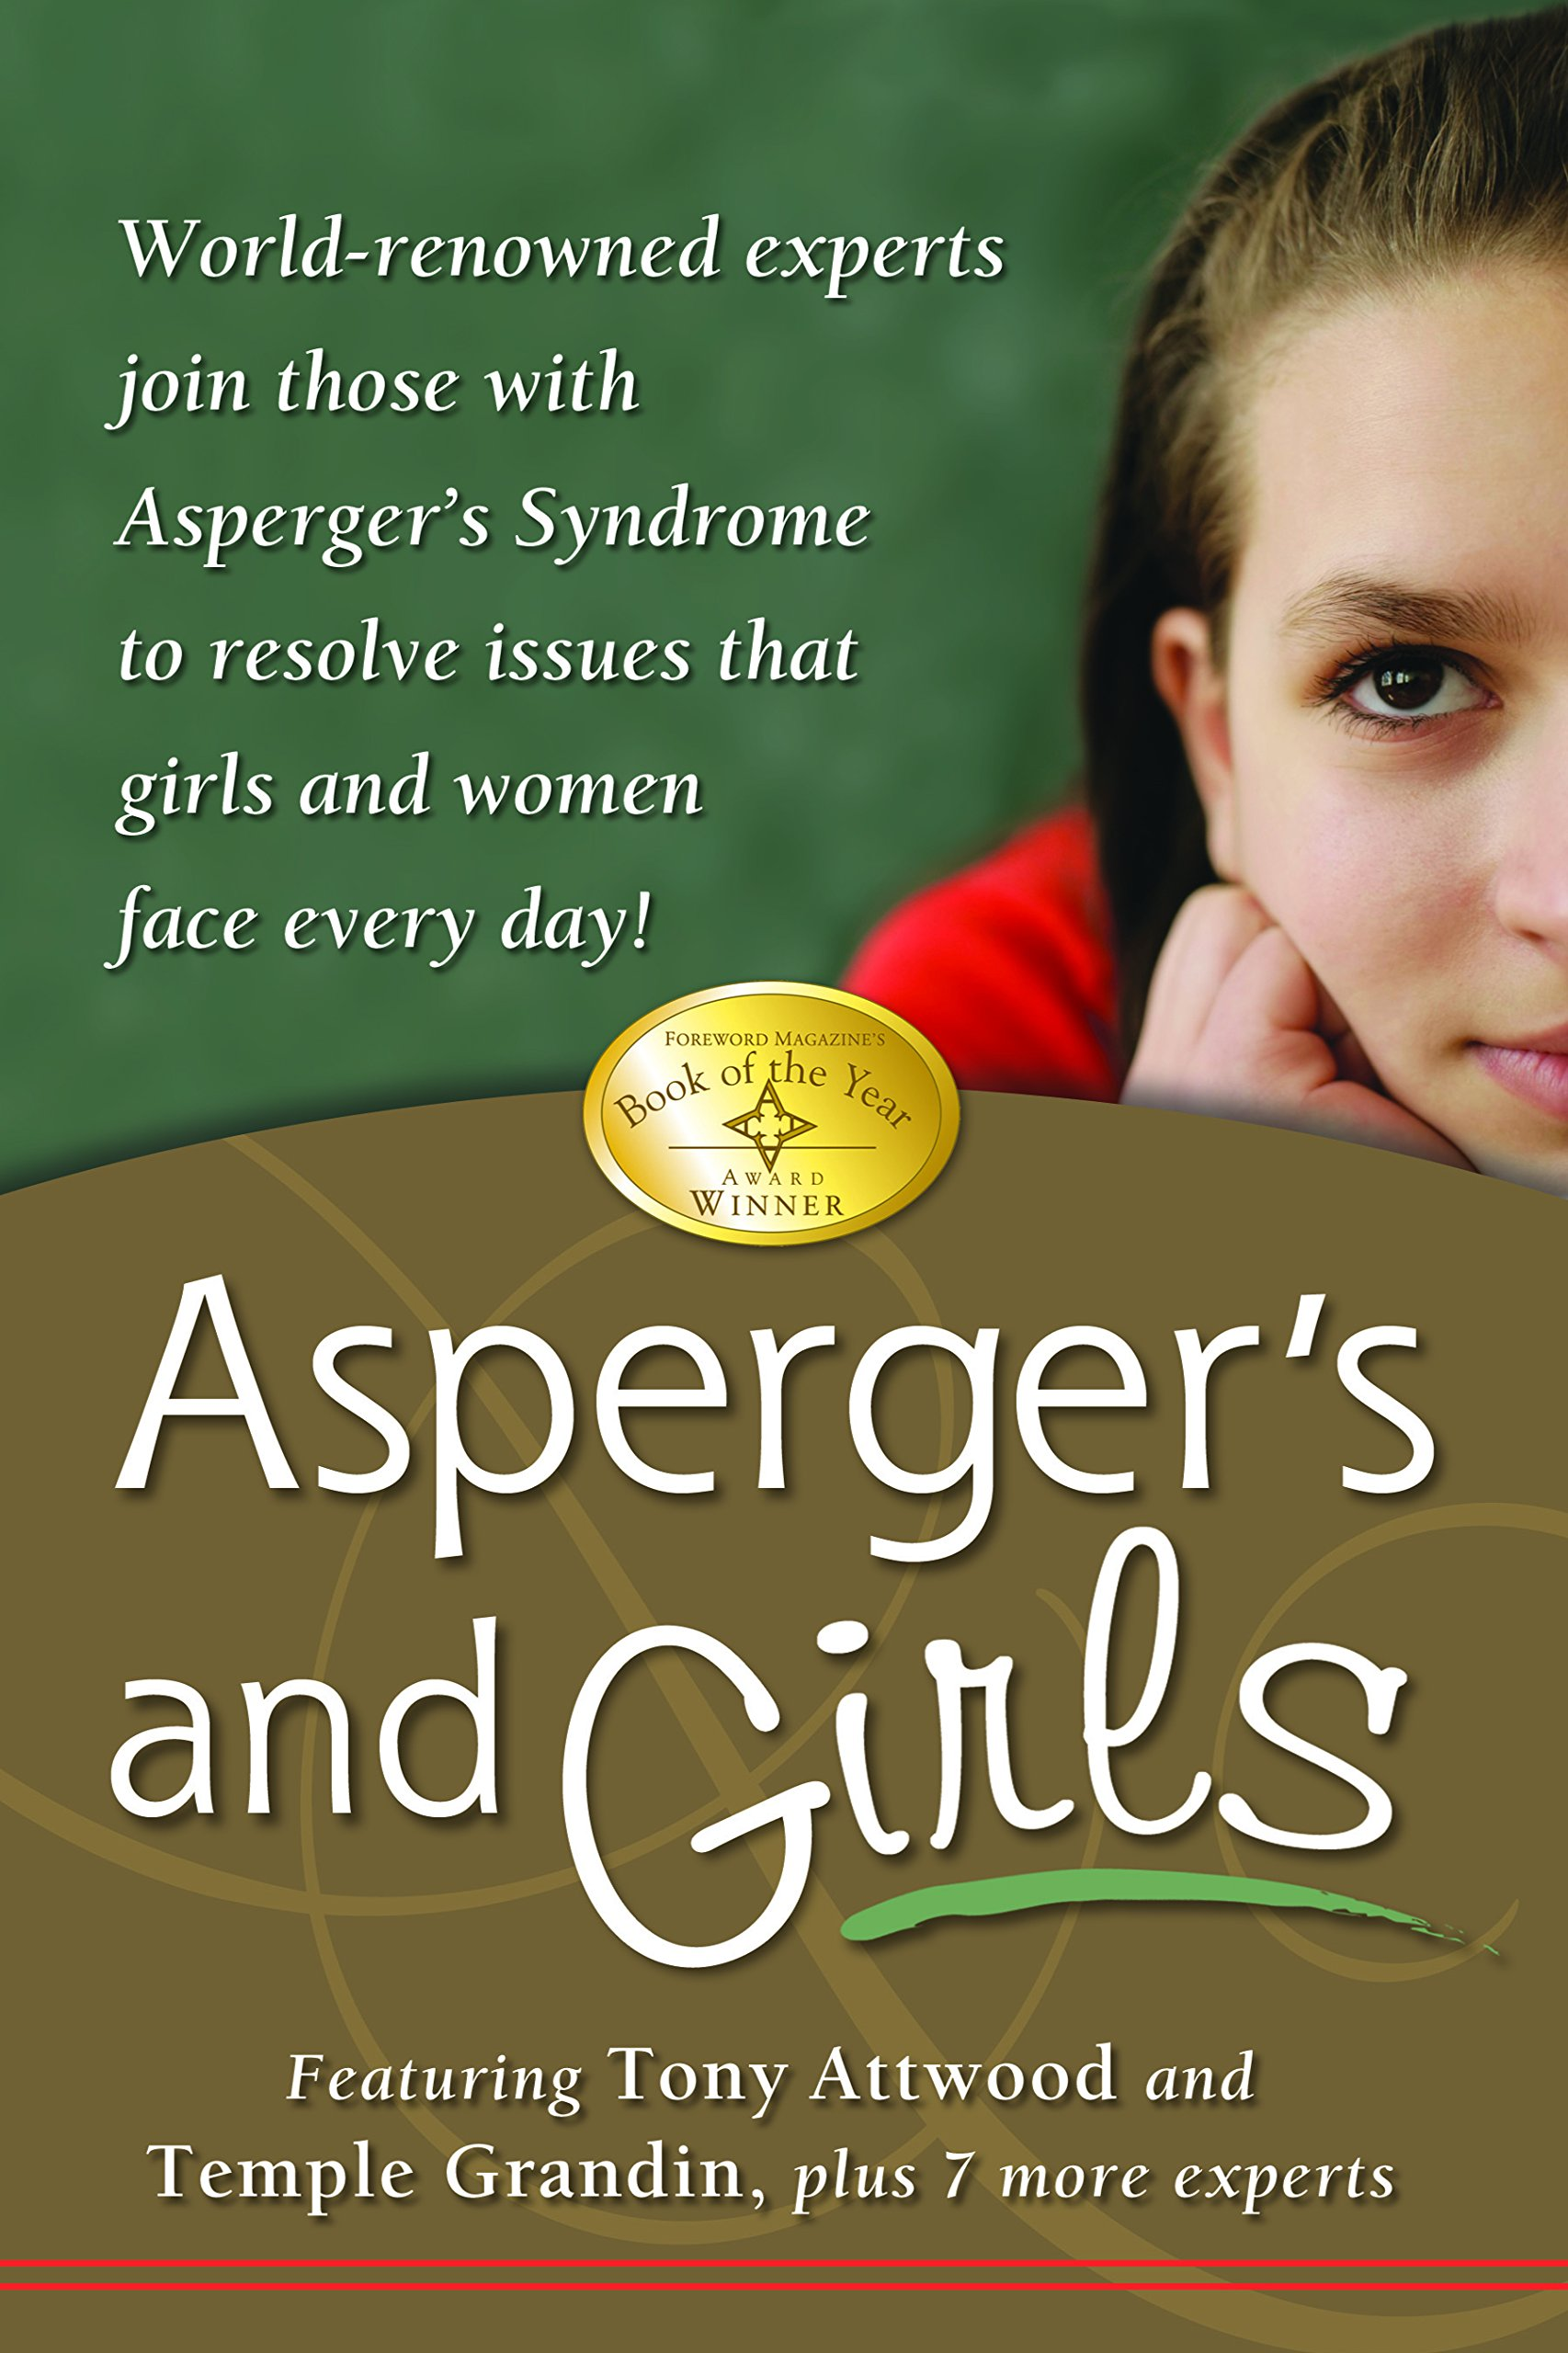 Register Now For Aspergerautism And >> Asperger S And Girls World Renowned Experts Join Those With